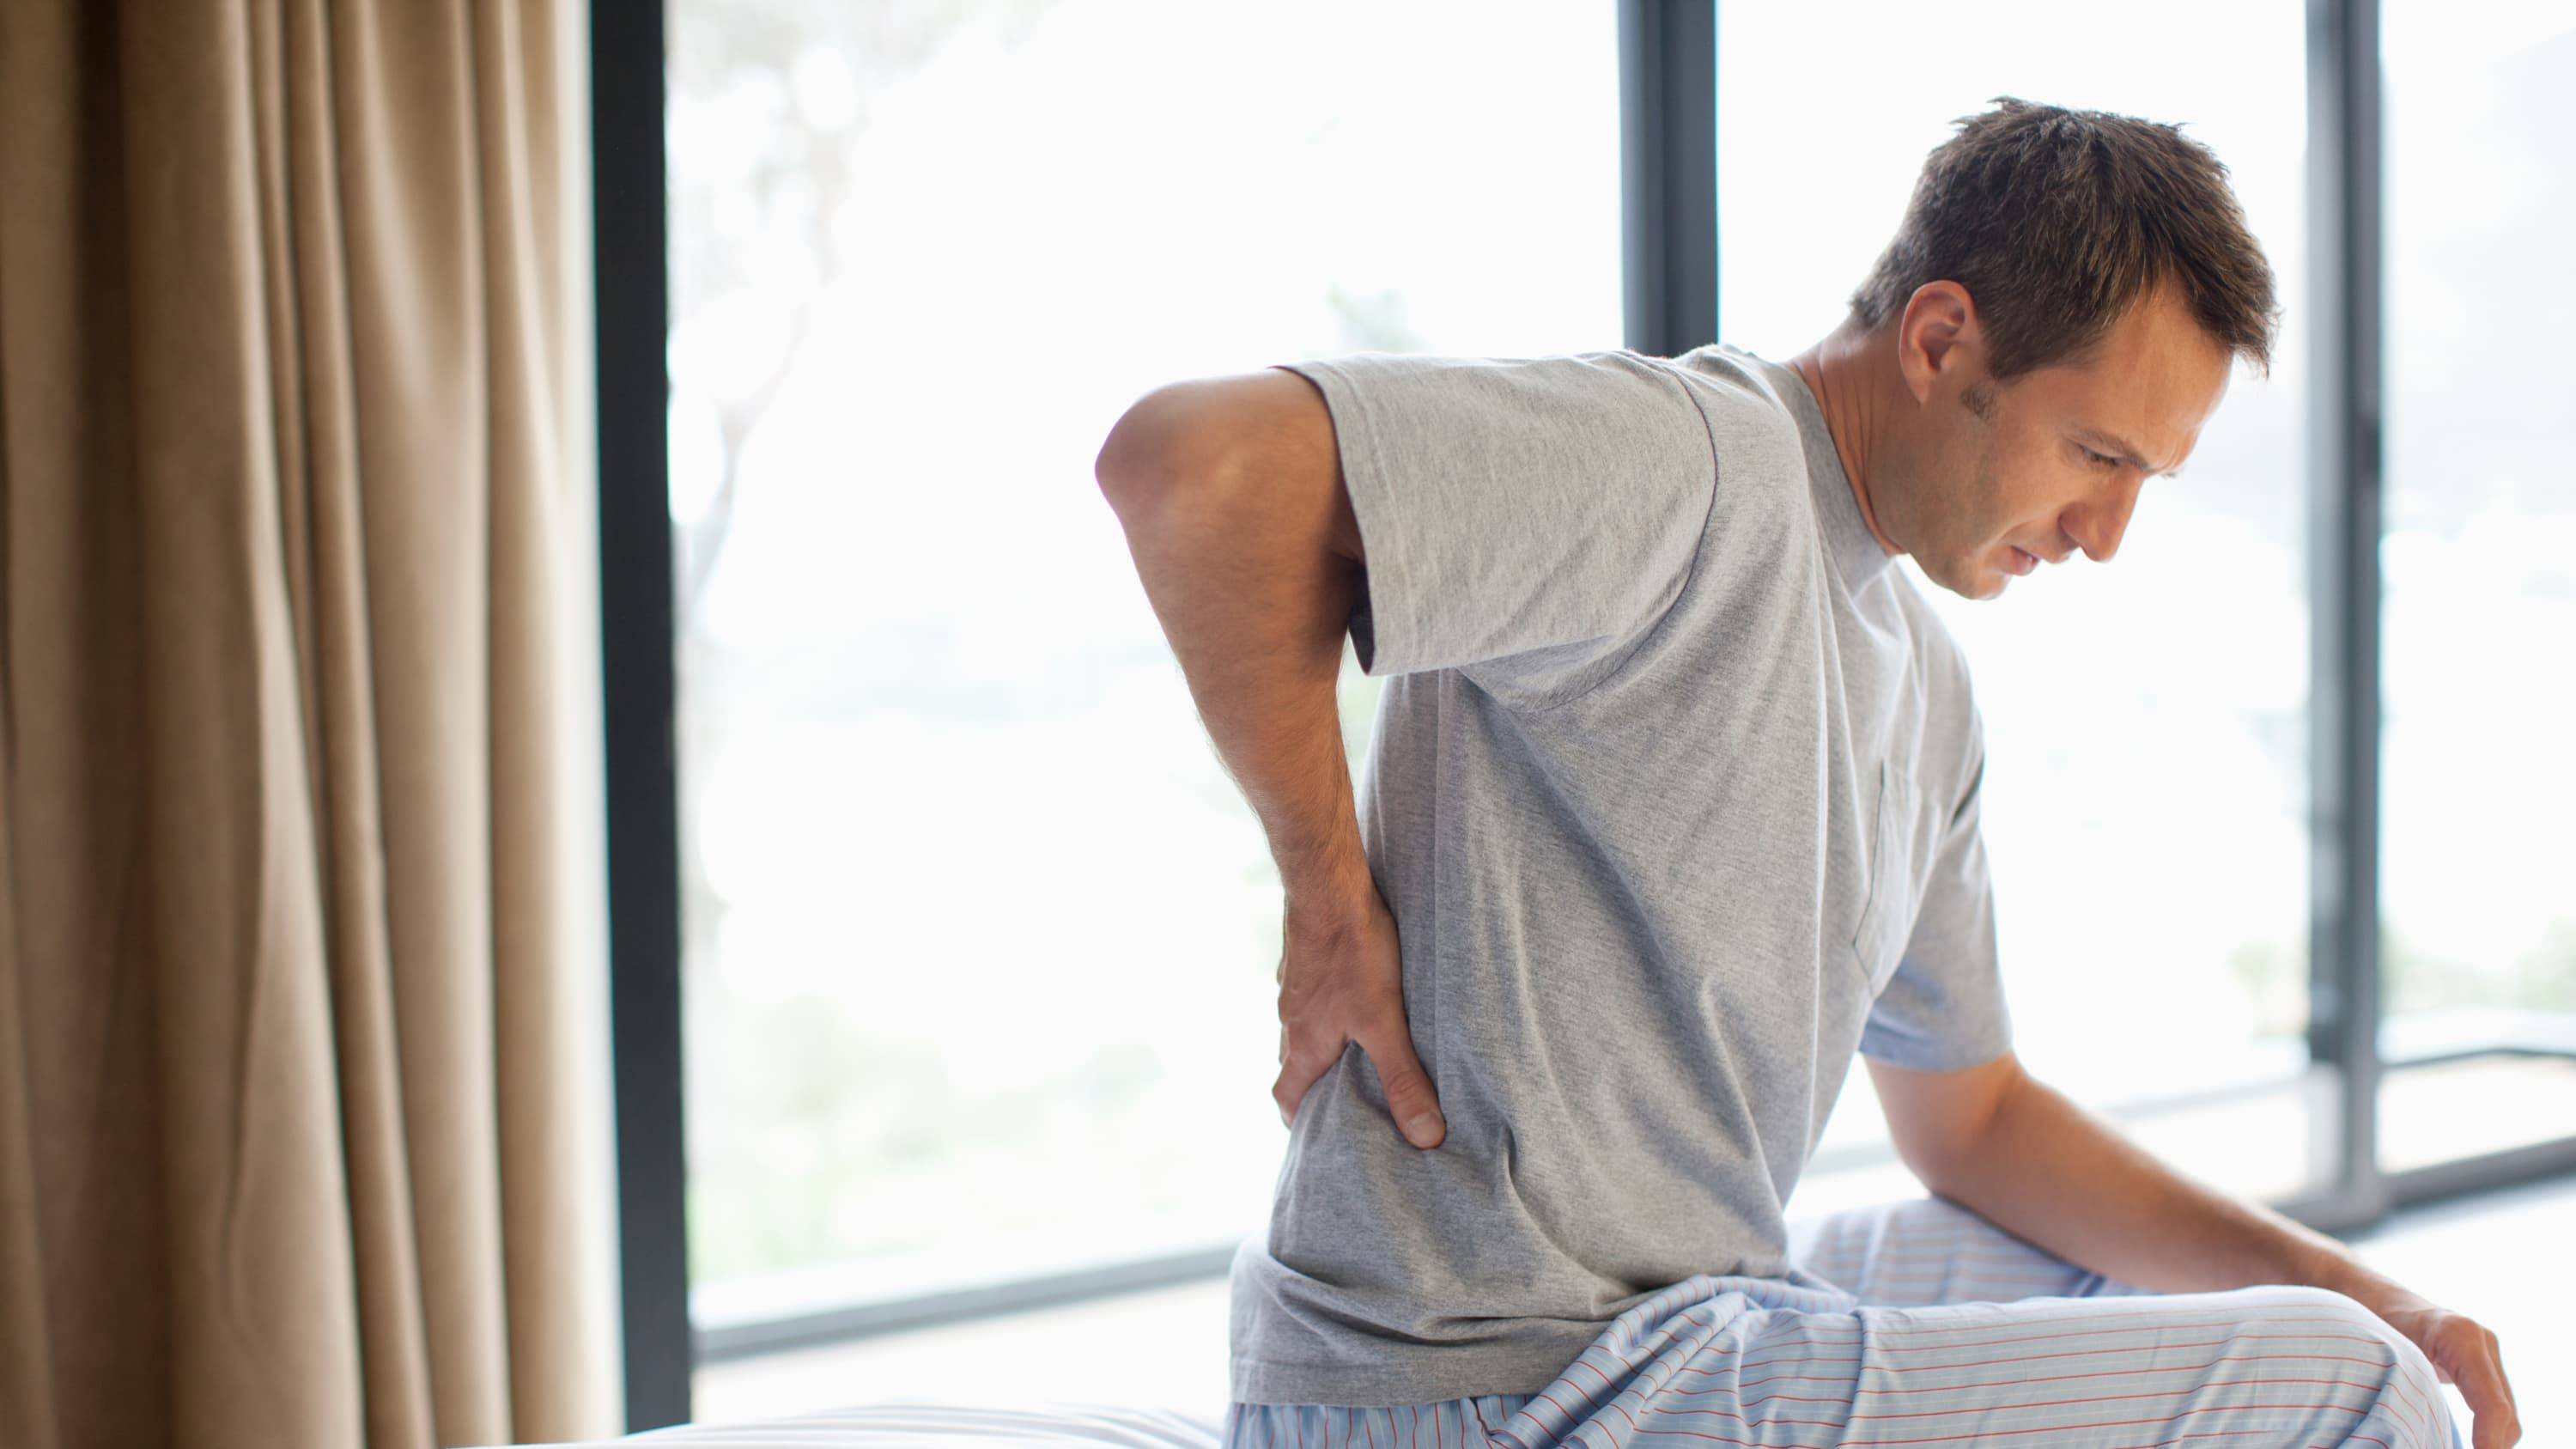 A man sits on his bed, rubbing his back, possibly from a herniated disc